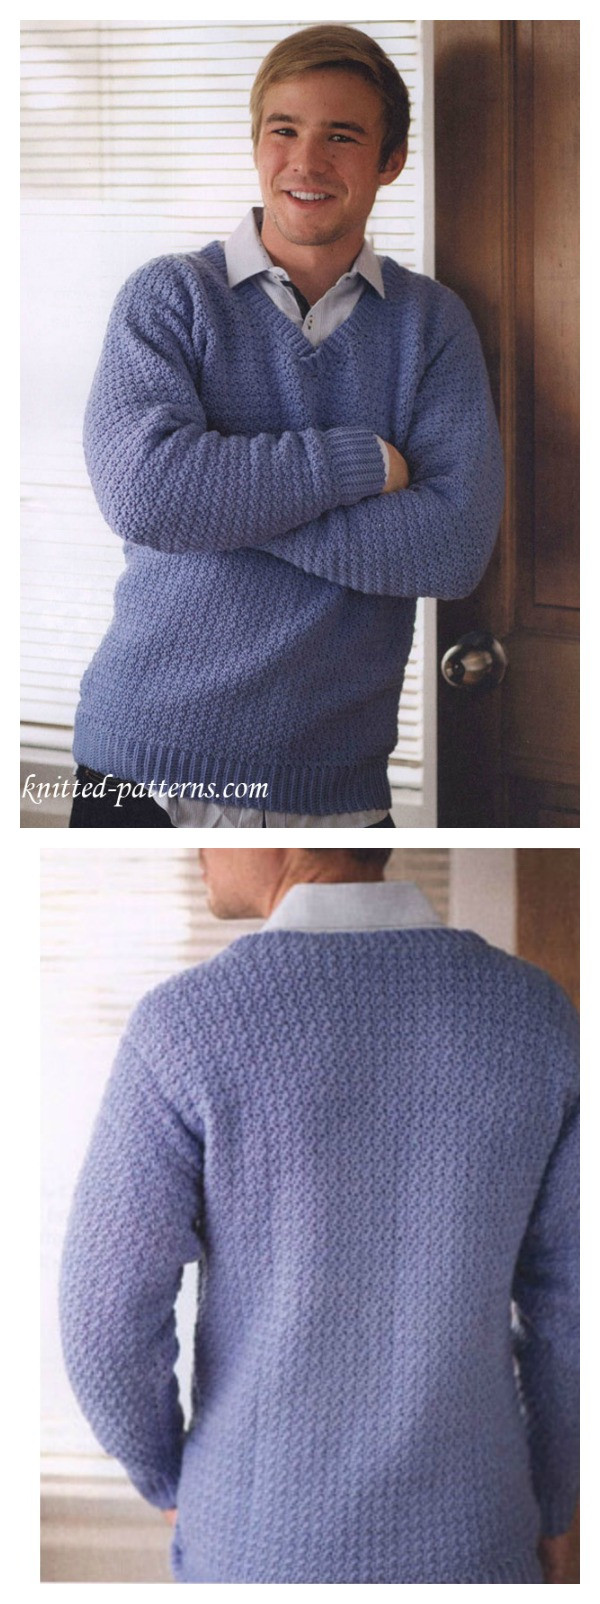 Beautiful 10 Free Men S Crochet Patterns for Holiday Gift Ideas Crochet Mens Sweater Of Attractive 49 Pictures Crochet Mens Sweater